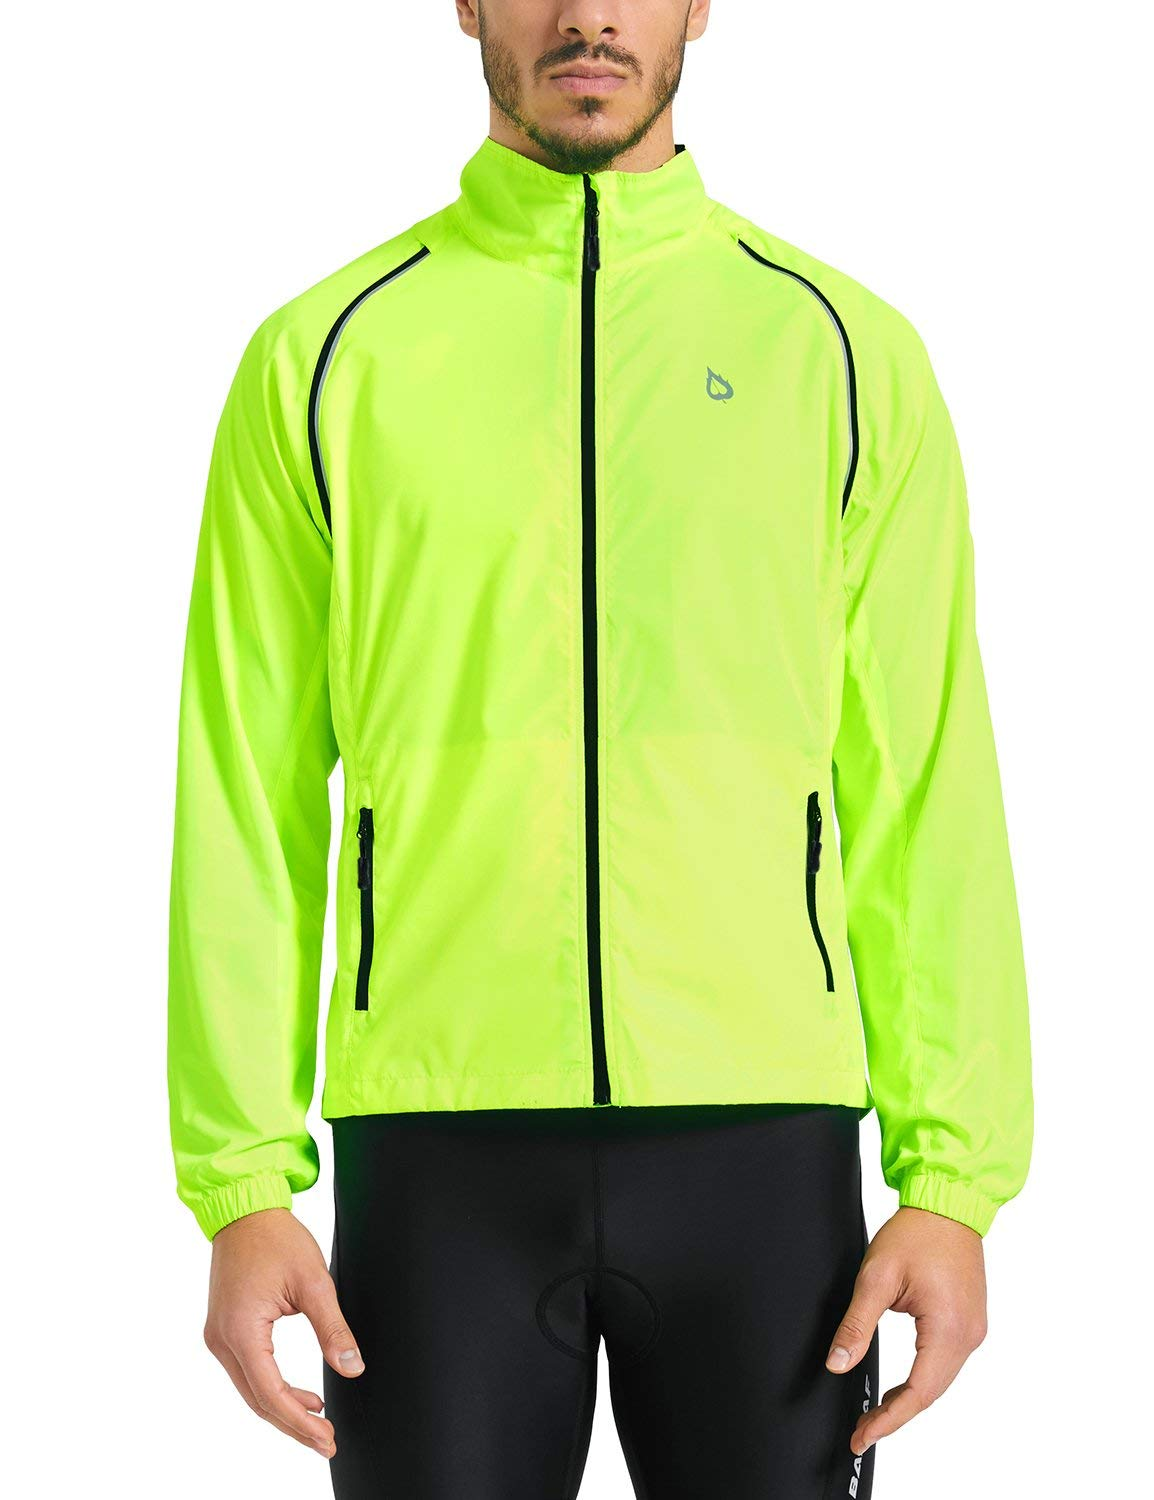 Baleaf Men's Cycling Jacket Vest Windproof Water-Resistant Coat Breathable Outdoor Sportswear Fluorescent Yellow Size S